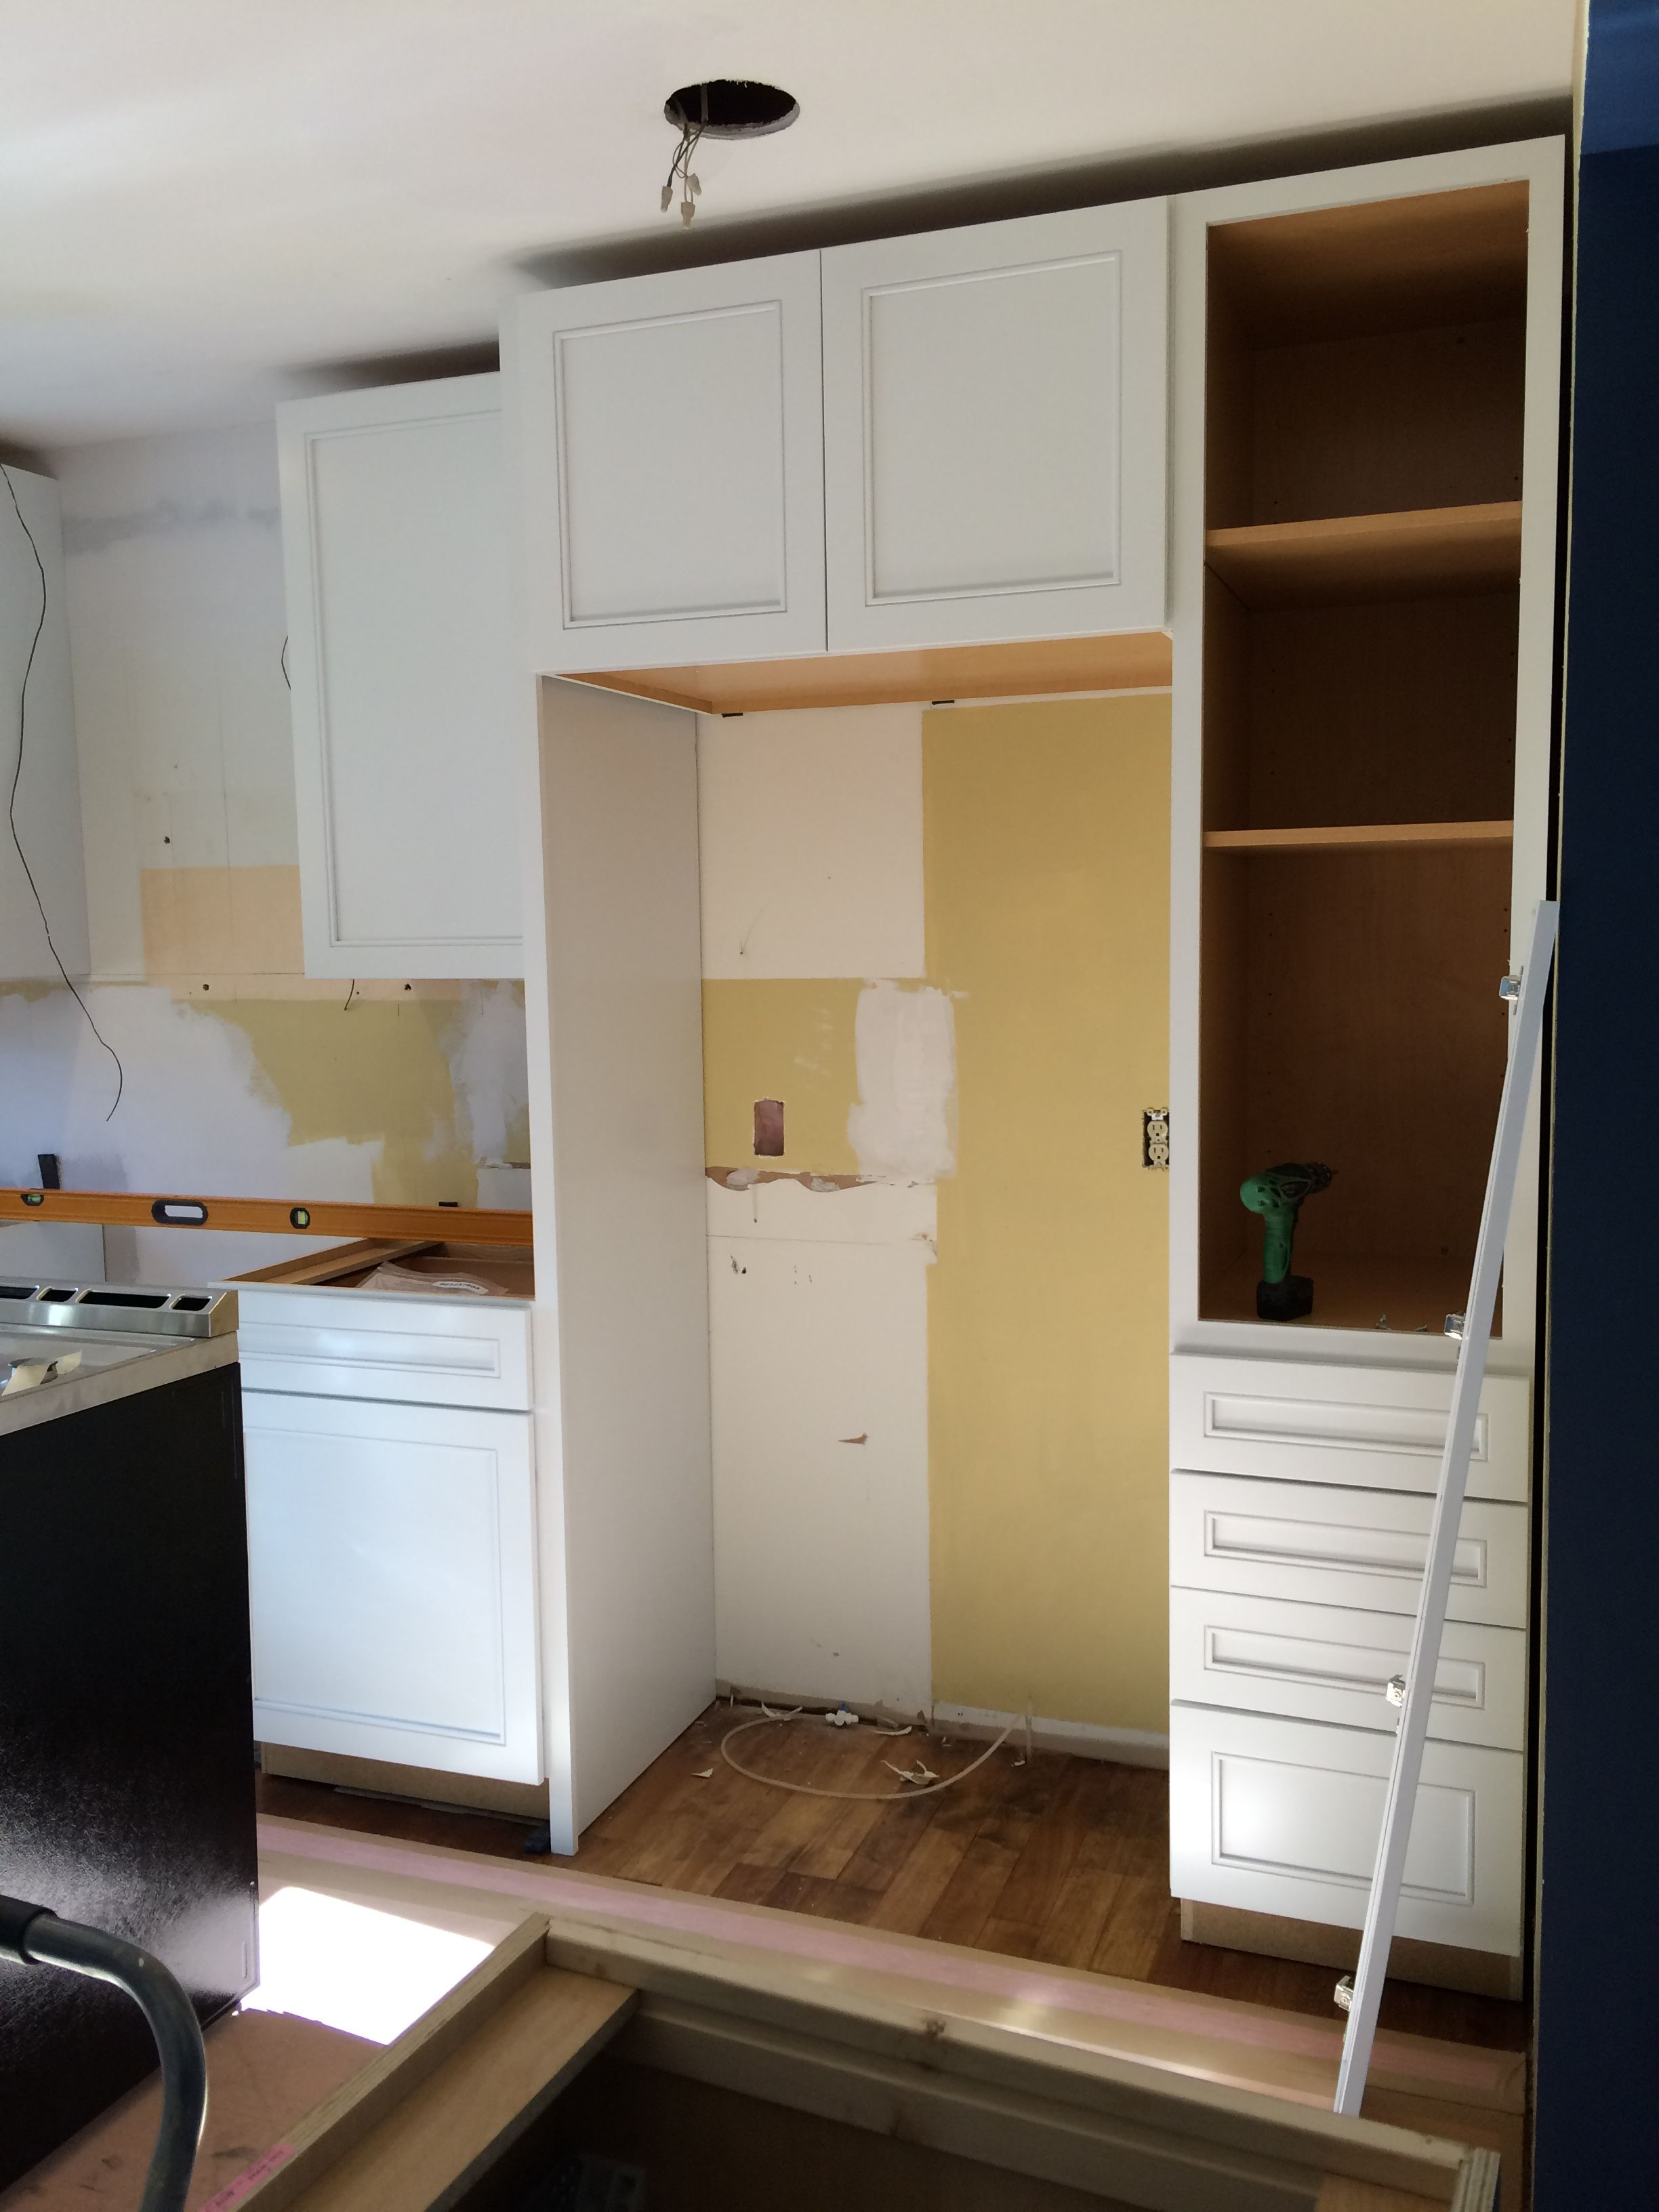 Kitchen renovation cabinet installation using kraftmaid before